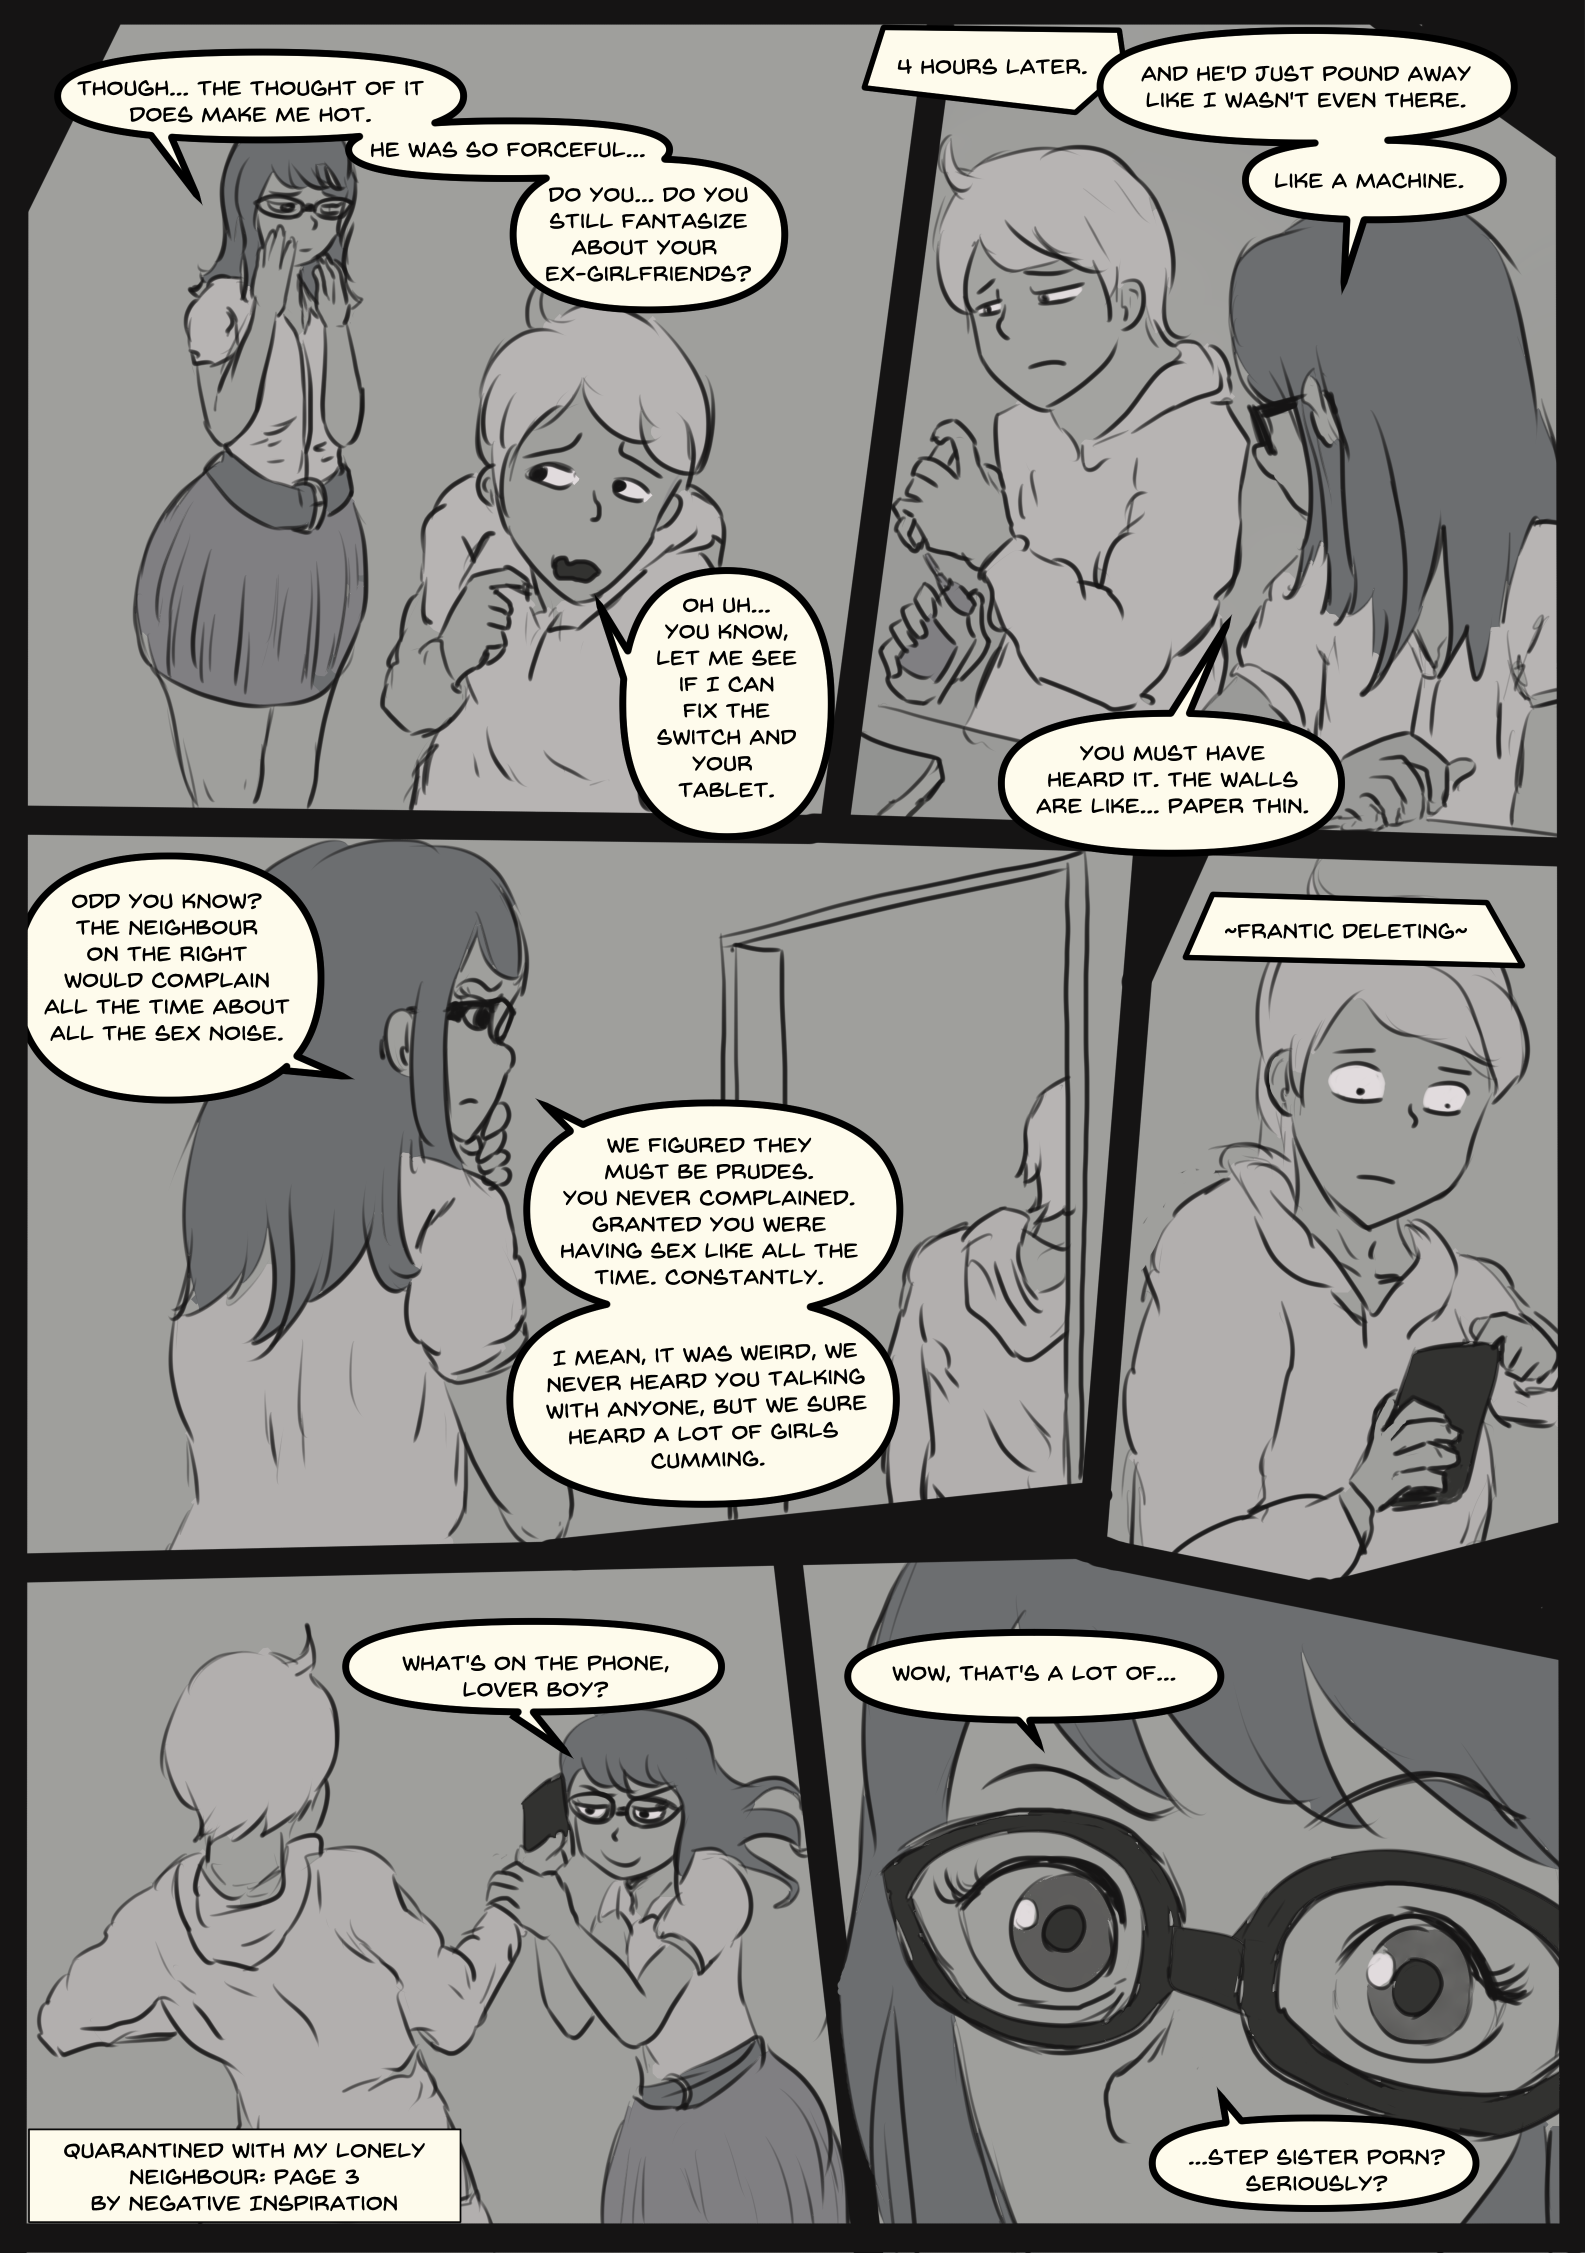 Quarantined with my Lonely Neighbour: Page 3